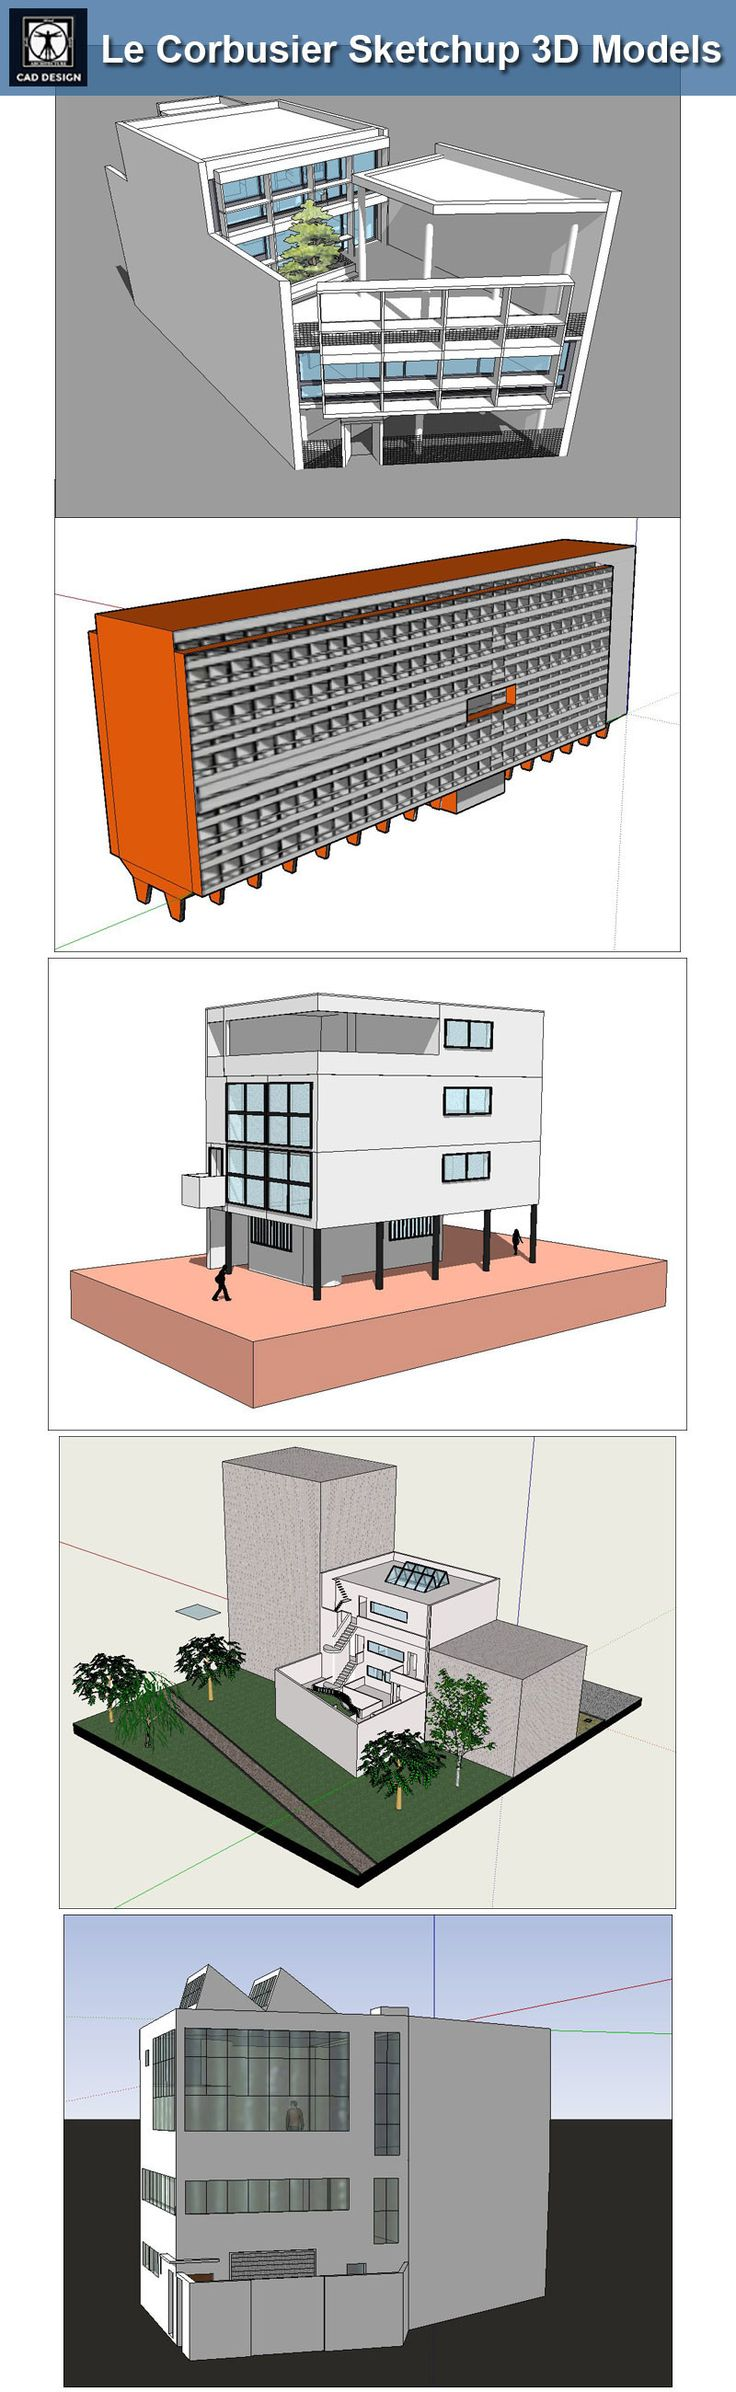 100+ best Architectural decorative blocks images on Pinterest | 3d California House Cad Designs on fab house design, support structure design, house structure design, business house design, cnc house design, classic house design, radiant heating installation and design, autocad 3d design, engineering house design, japanese tea house design, top house design, art house design, google sketchup house design, box structure design, building structure design, architecture house design, 2d house design, solidworks house design, manufacturing house design, technical drawing and design,